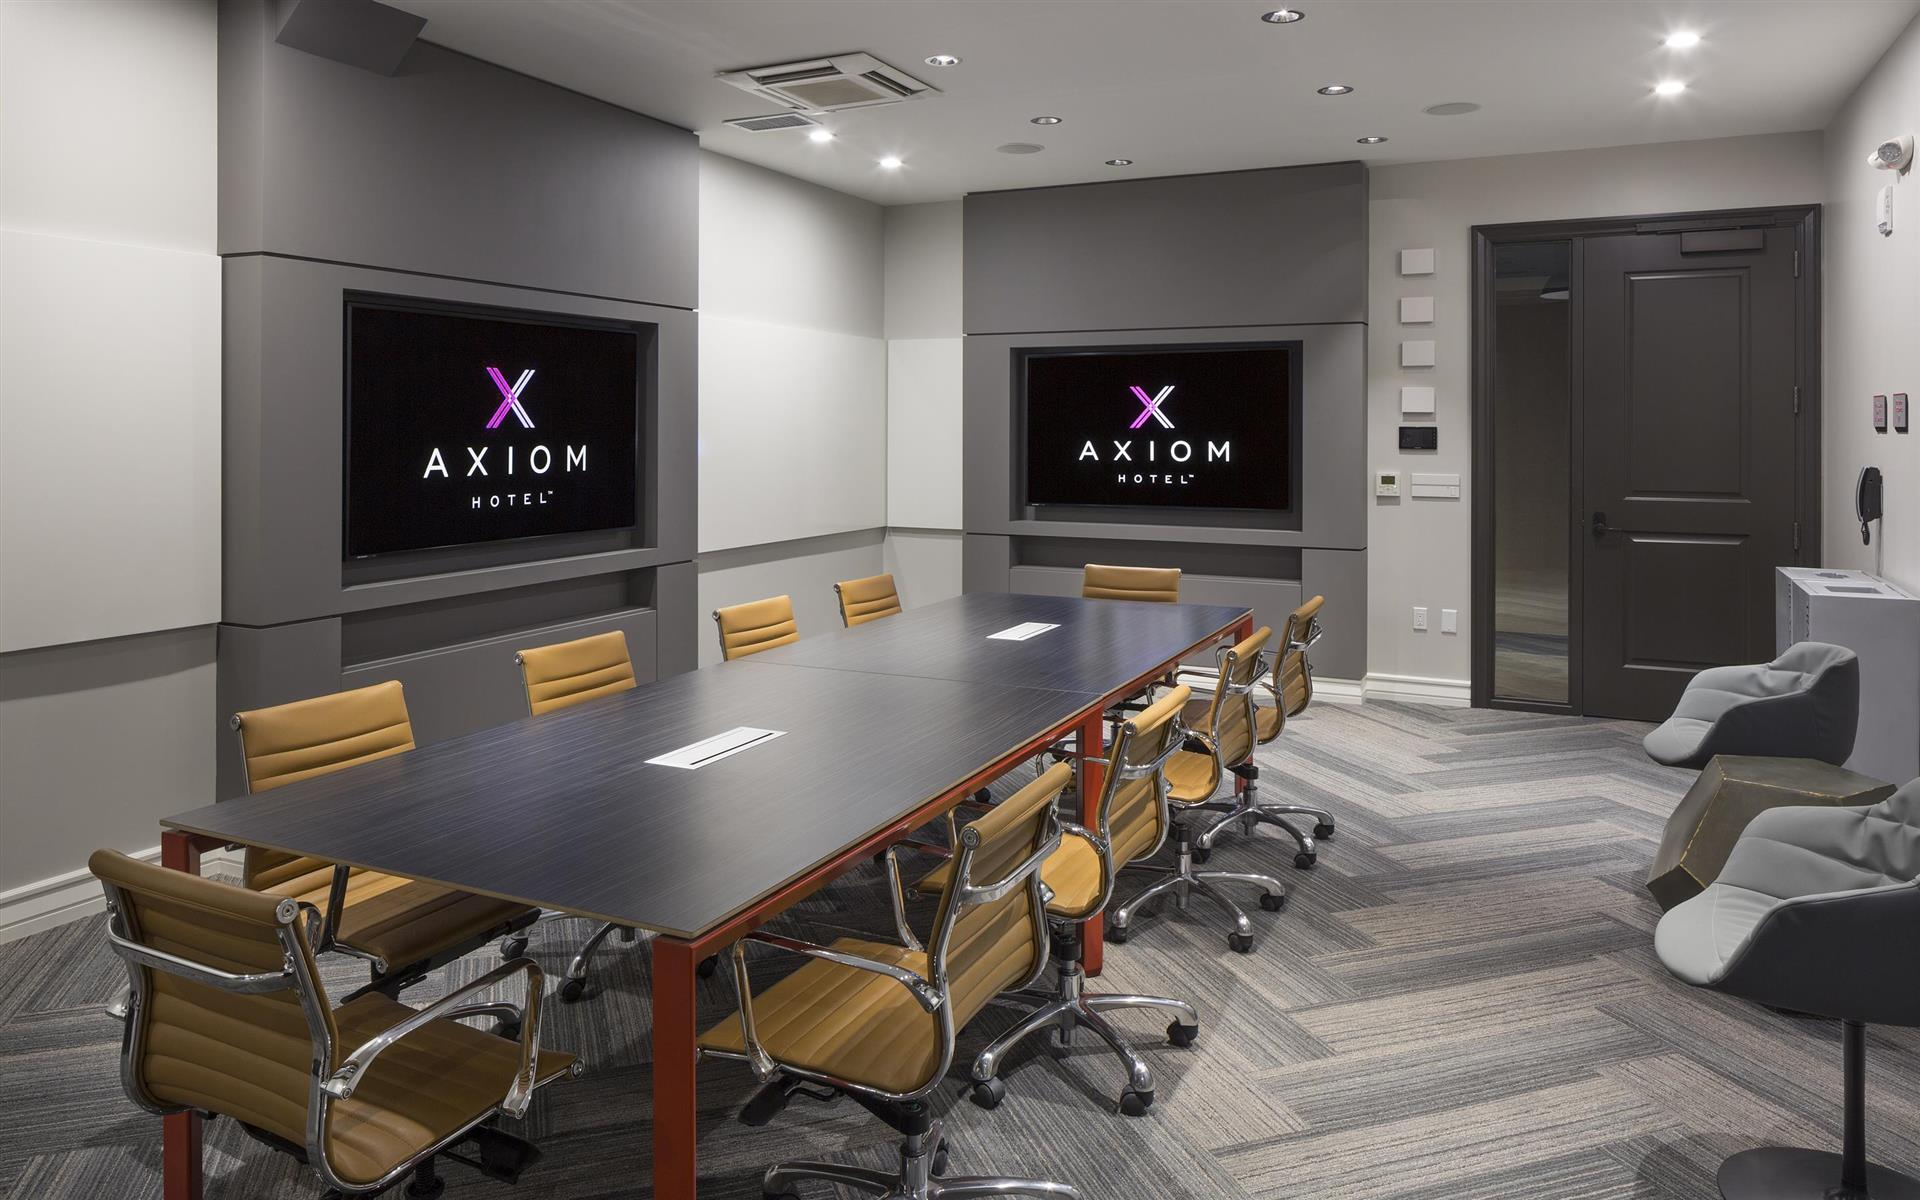 Axiom Hotel - Private Meeting Space in Union Square